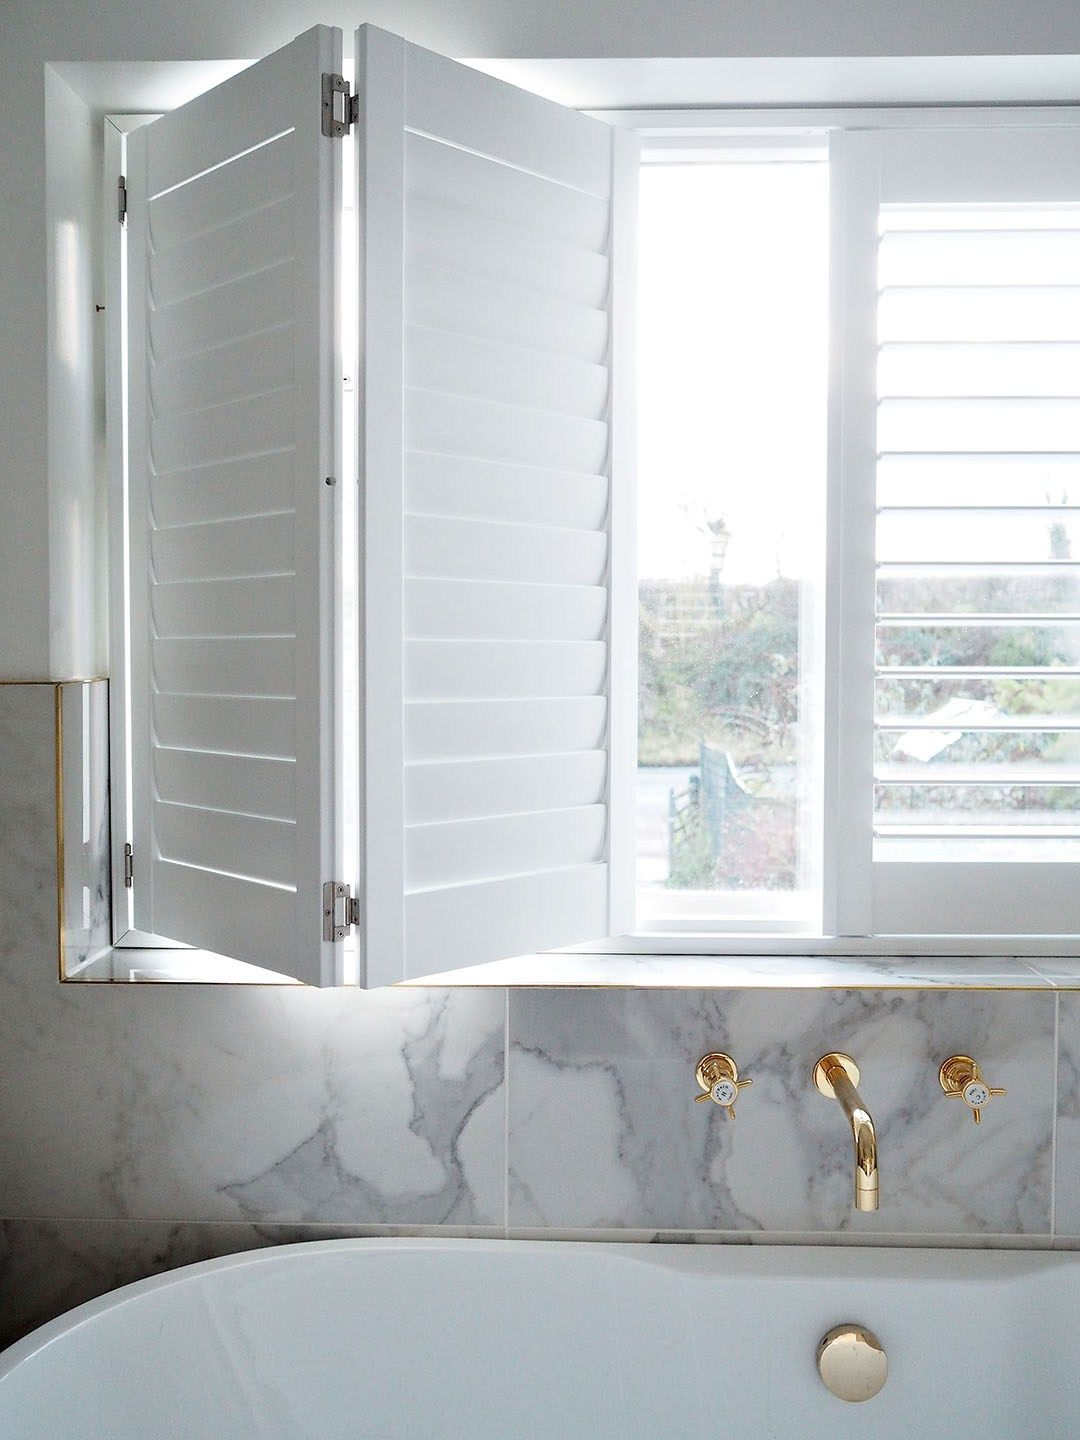 19 Shutters Ideas Shutters Window Shutters Interior Shutters